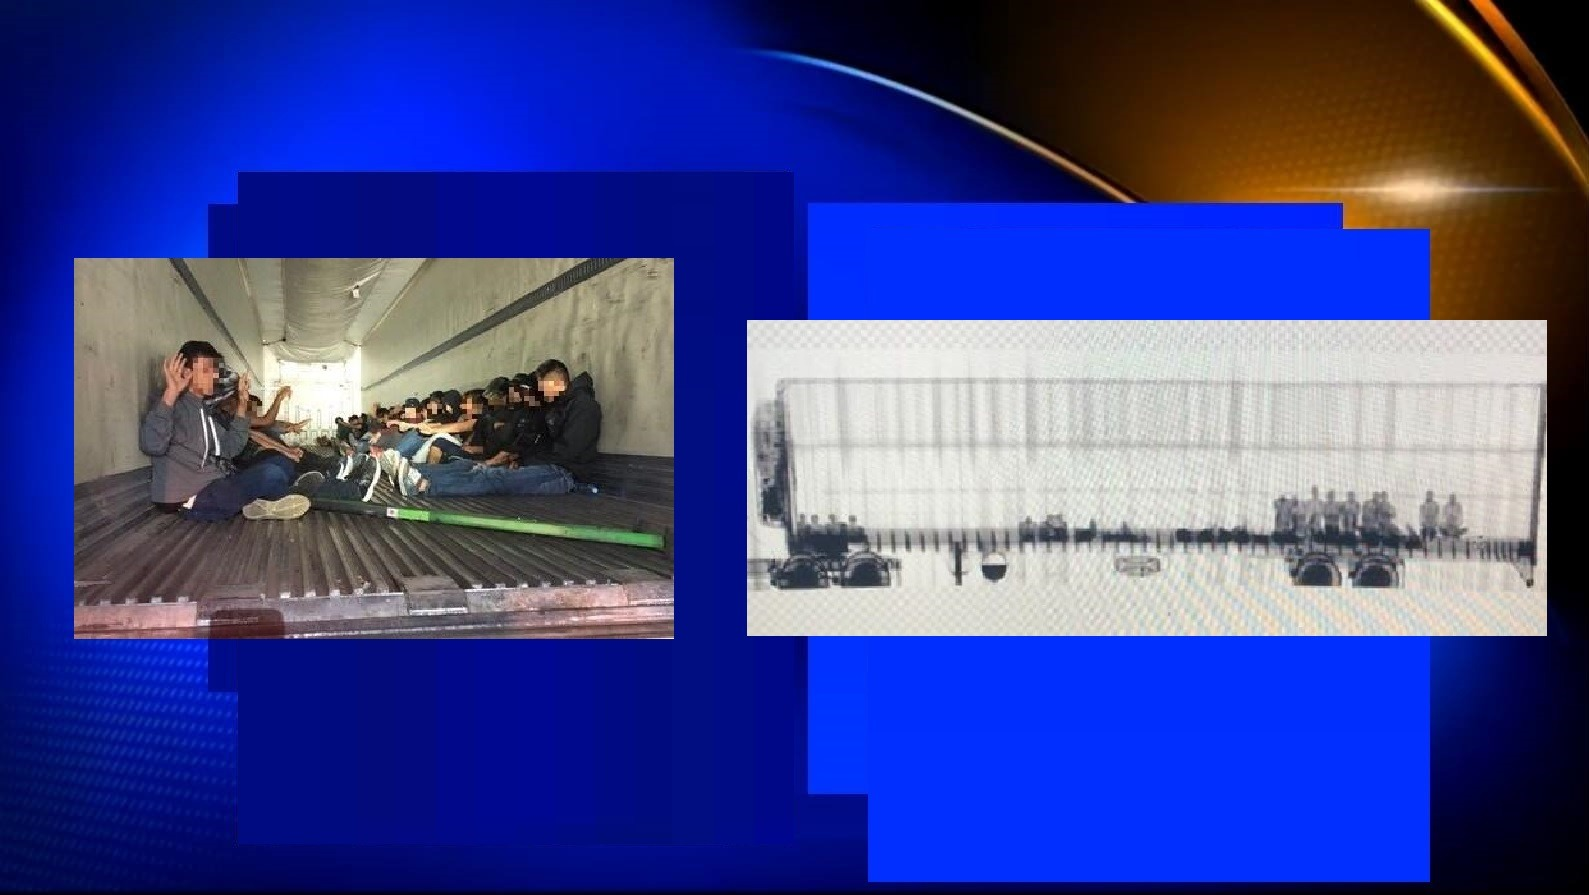 31 ILLEGAL IMMIGRANTS CAUGHT IN TRACTOR-TRAILER DURING SMUGGLING ATTEMPT